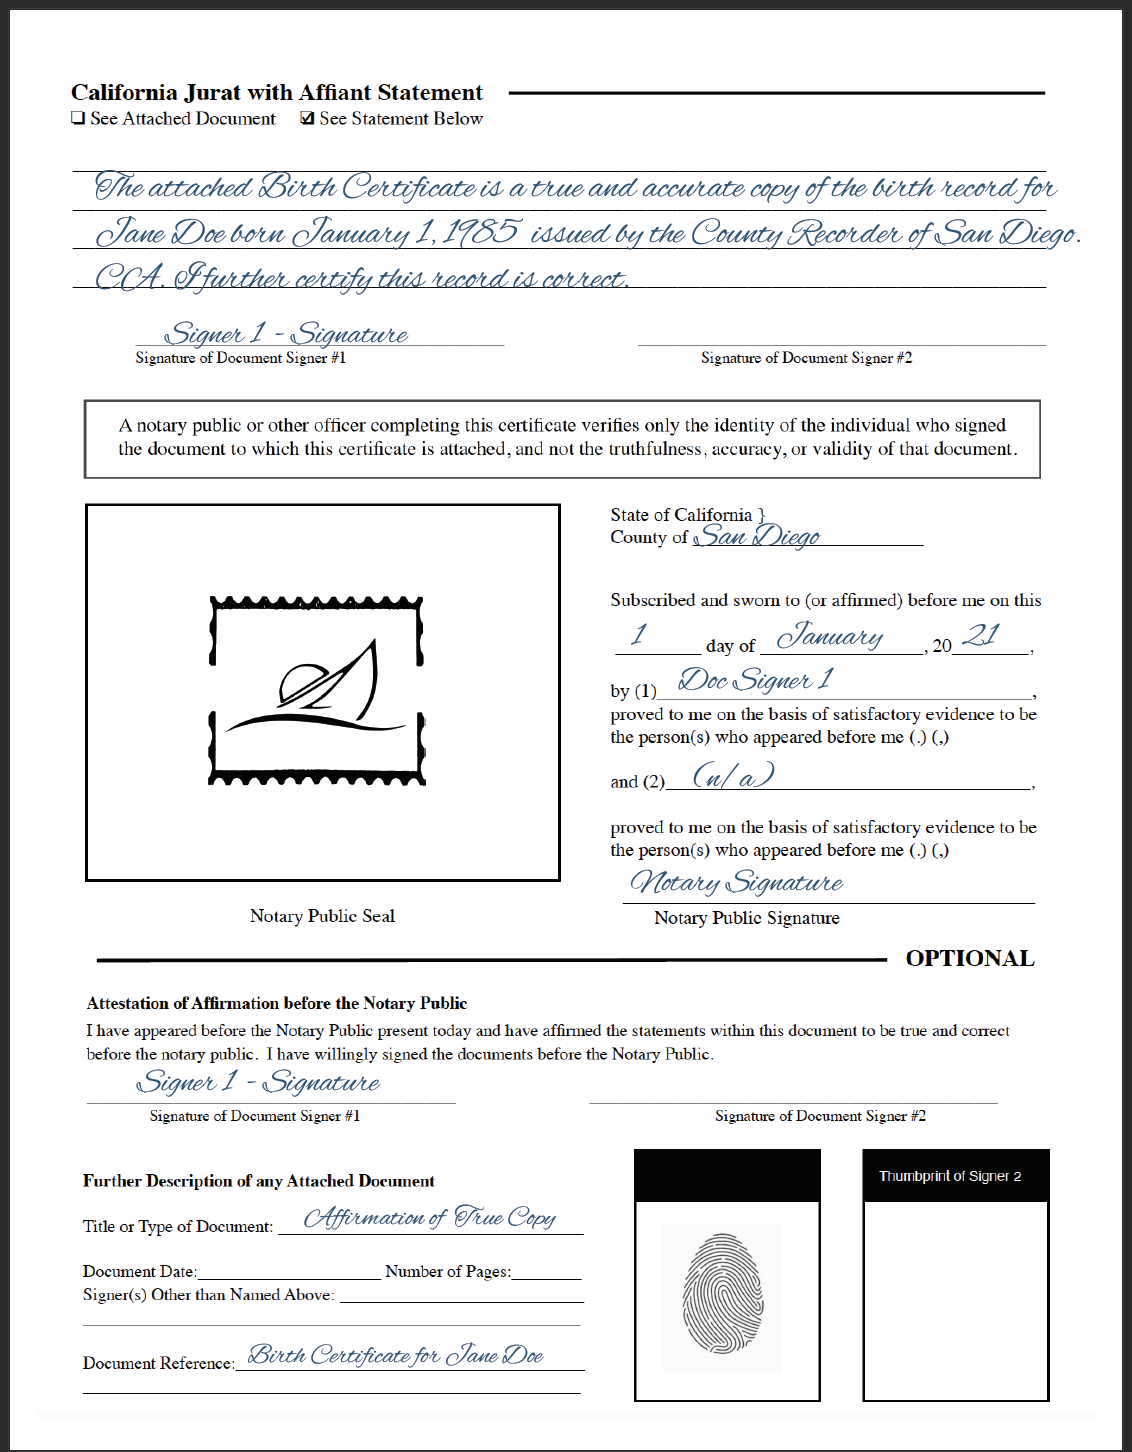 notary jurat form with affirmation statement